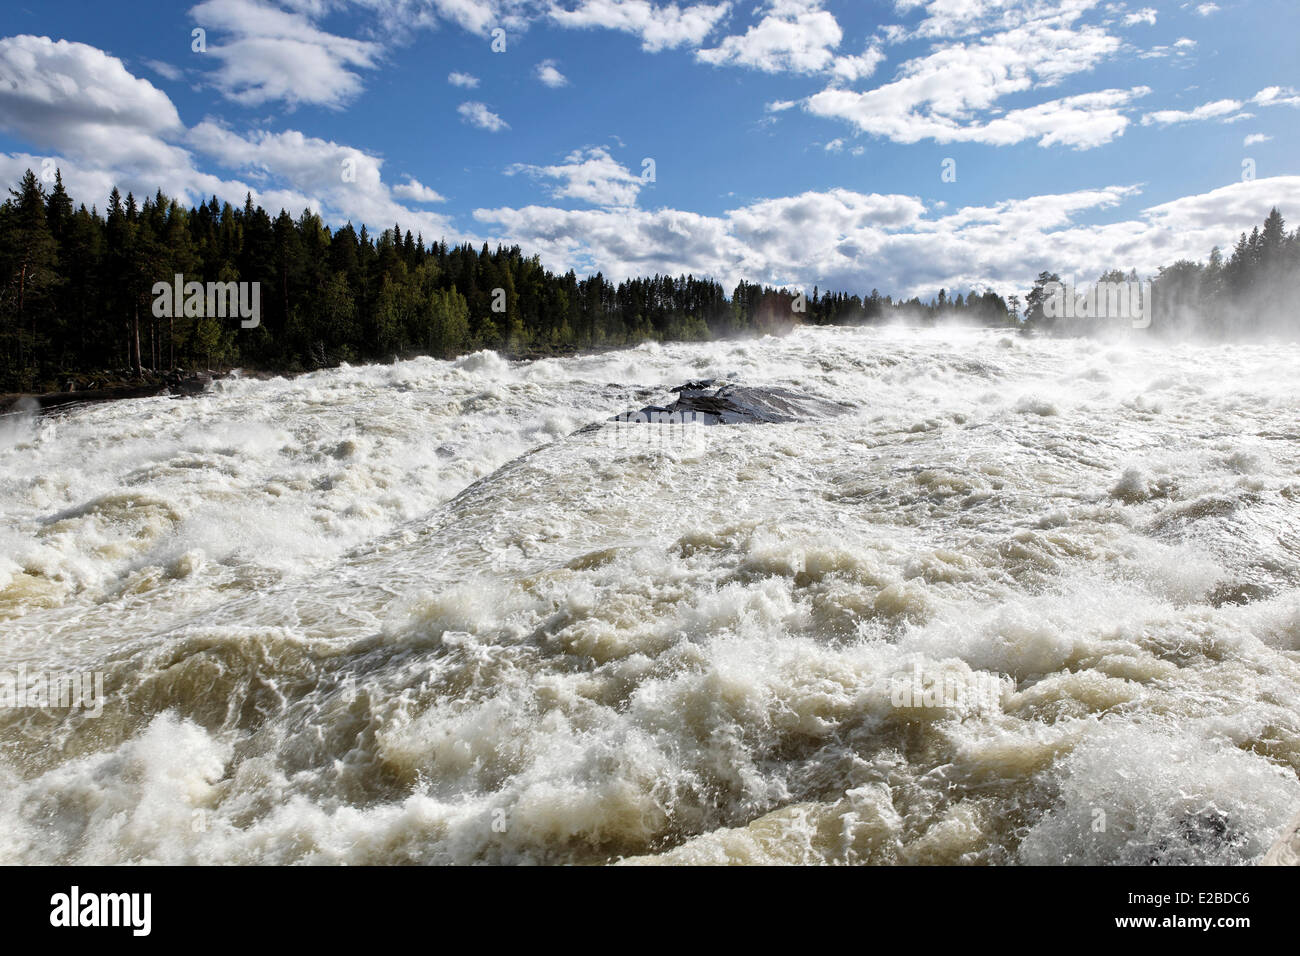 Sweden, Lapland, Norrbotten County, Storforsen waterfall, the biggest natural cataracts of Europe - Stock Image